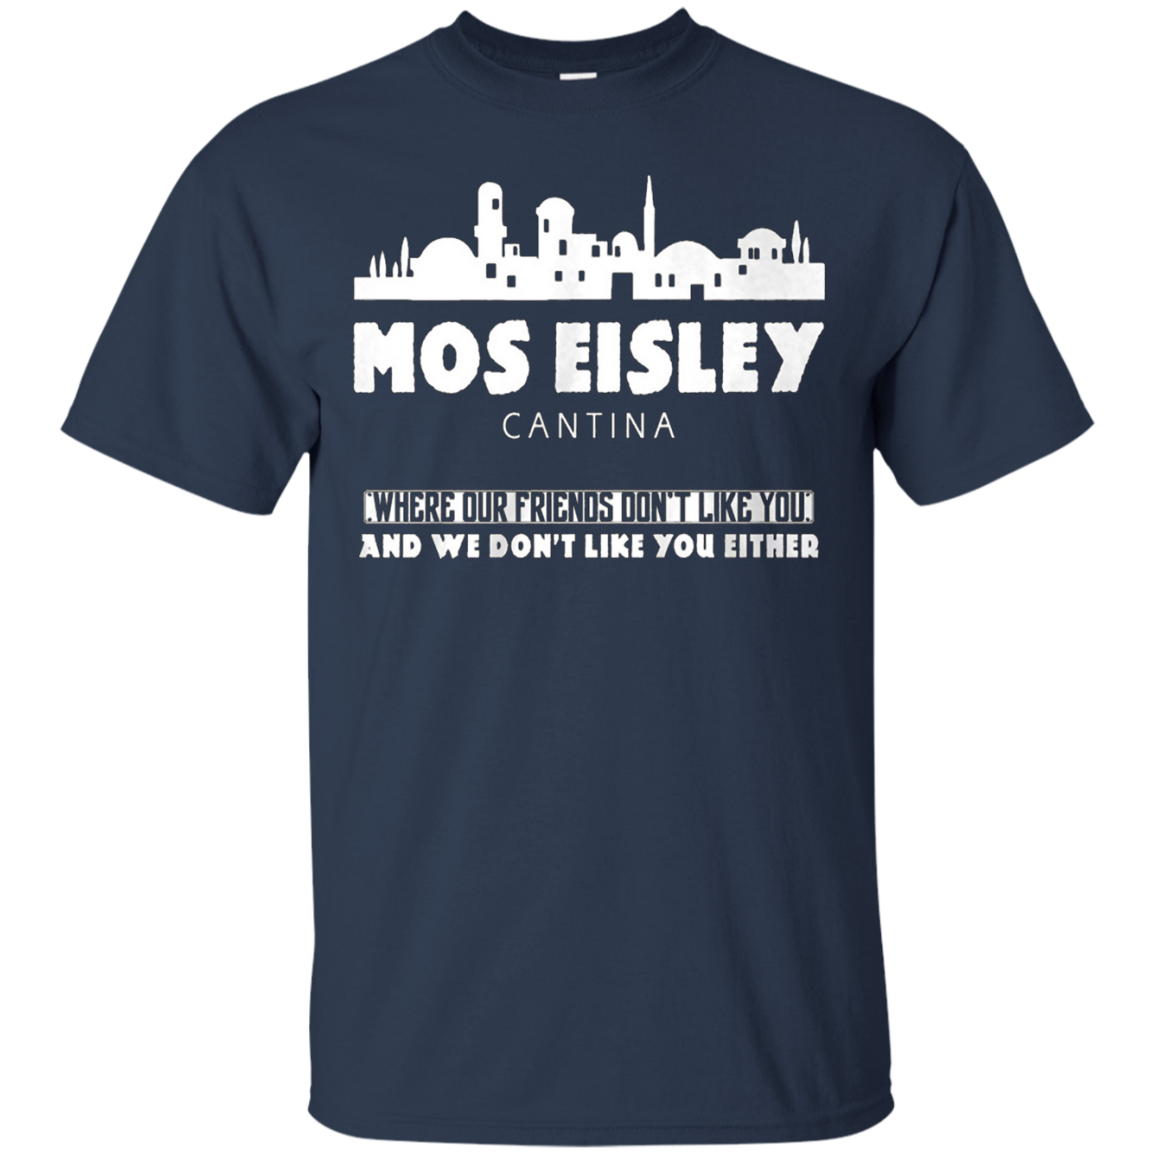 Mos eisley shirt - Where our friends don't like you and ...